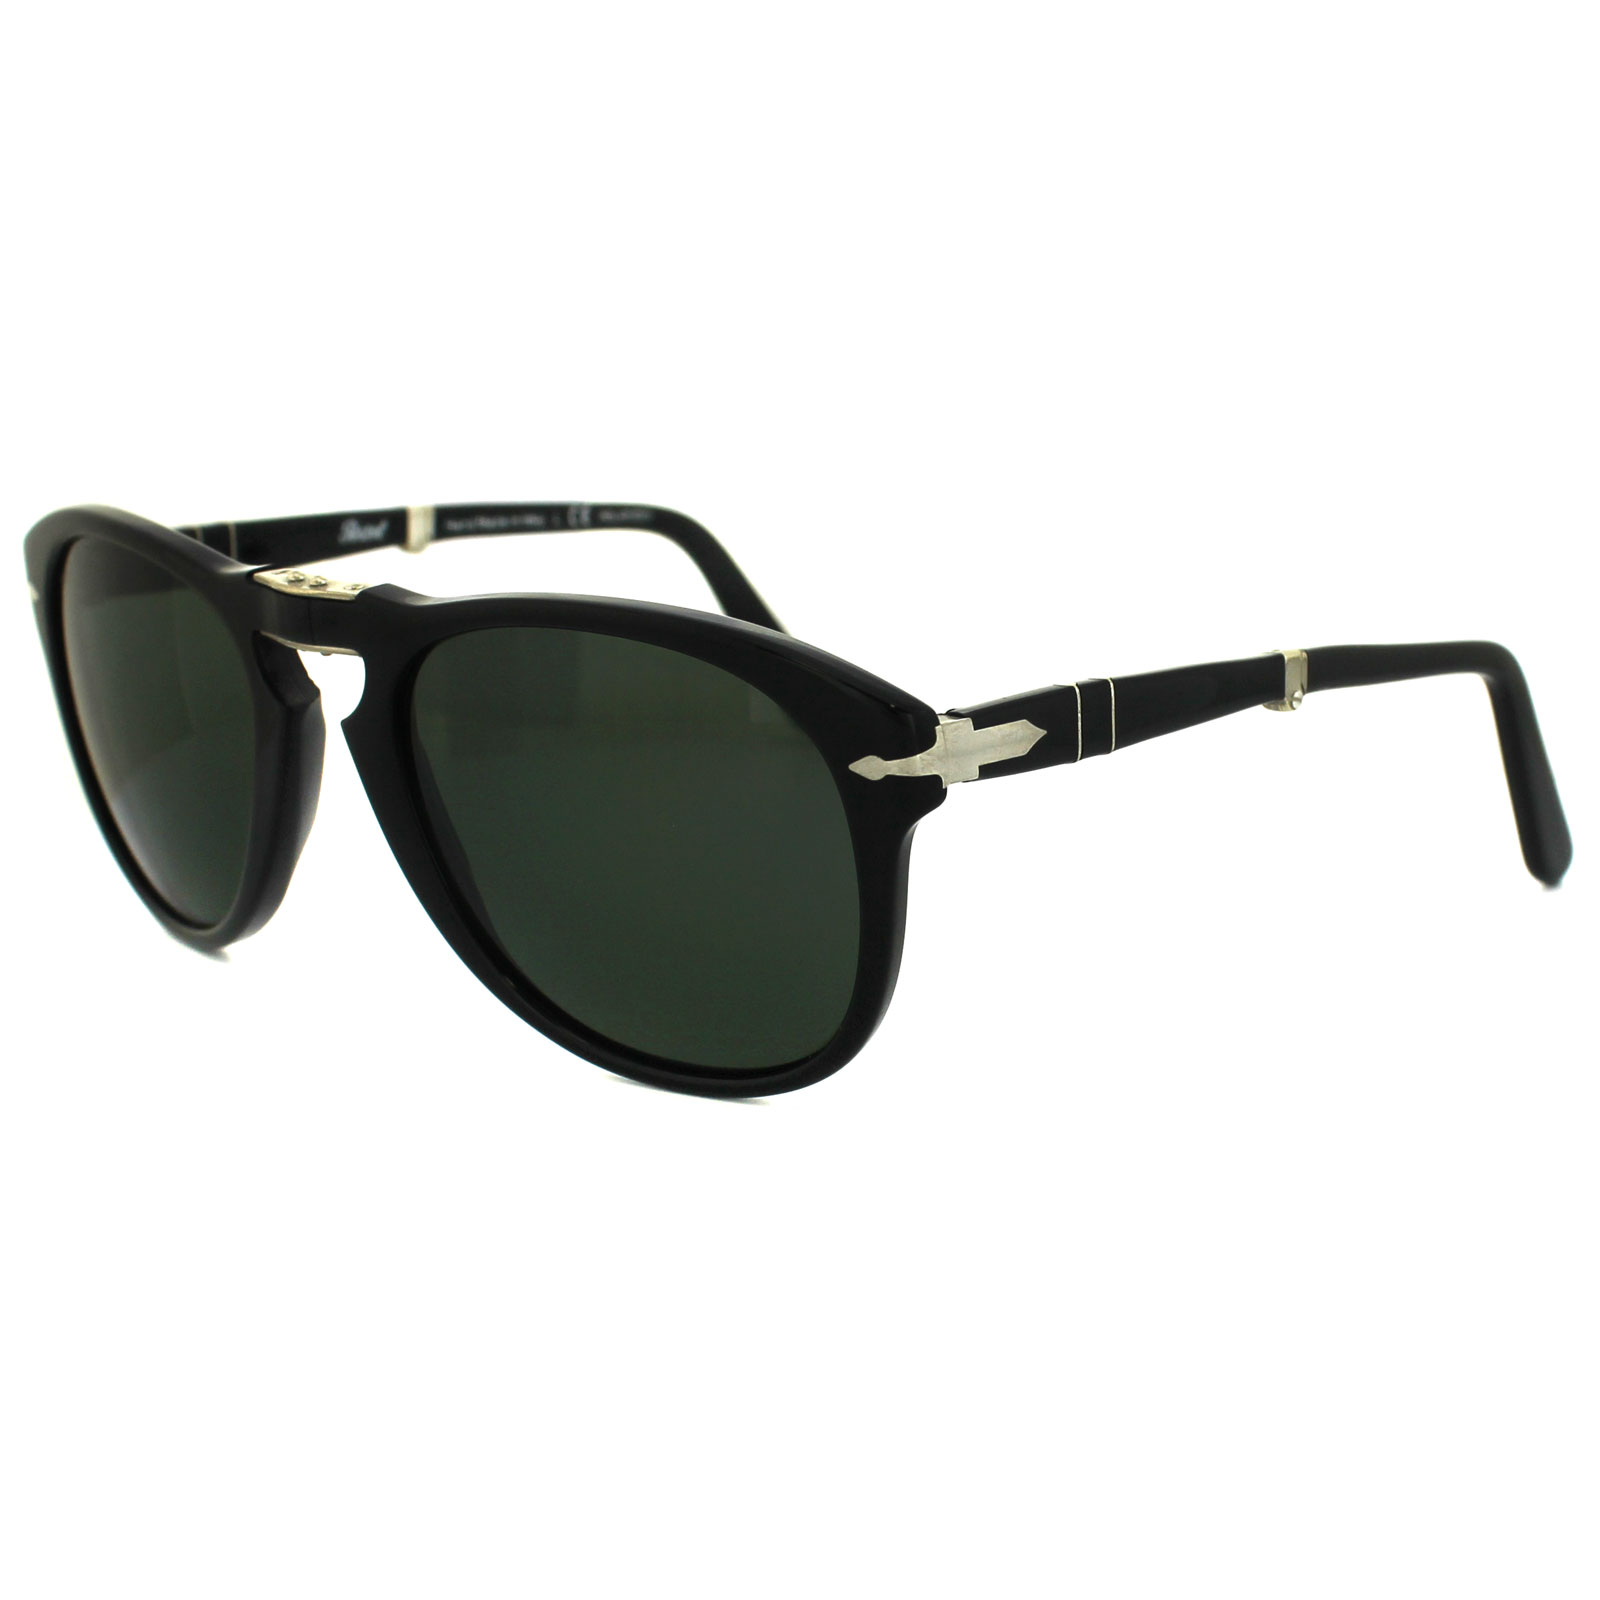 9dc1260ec598a Sentinel Persol Sunglasses 714 95 58 Black Green Polarized Folding Steve  McQueen 54mm